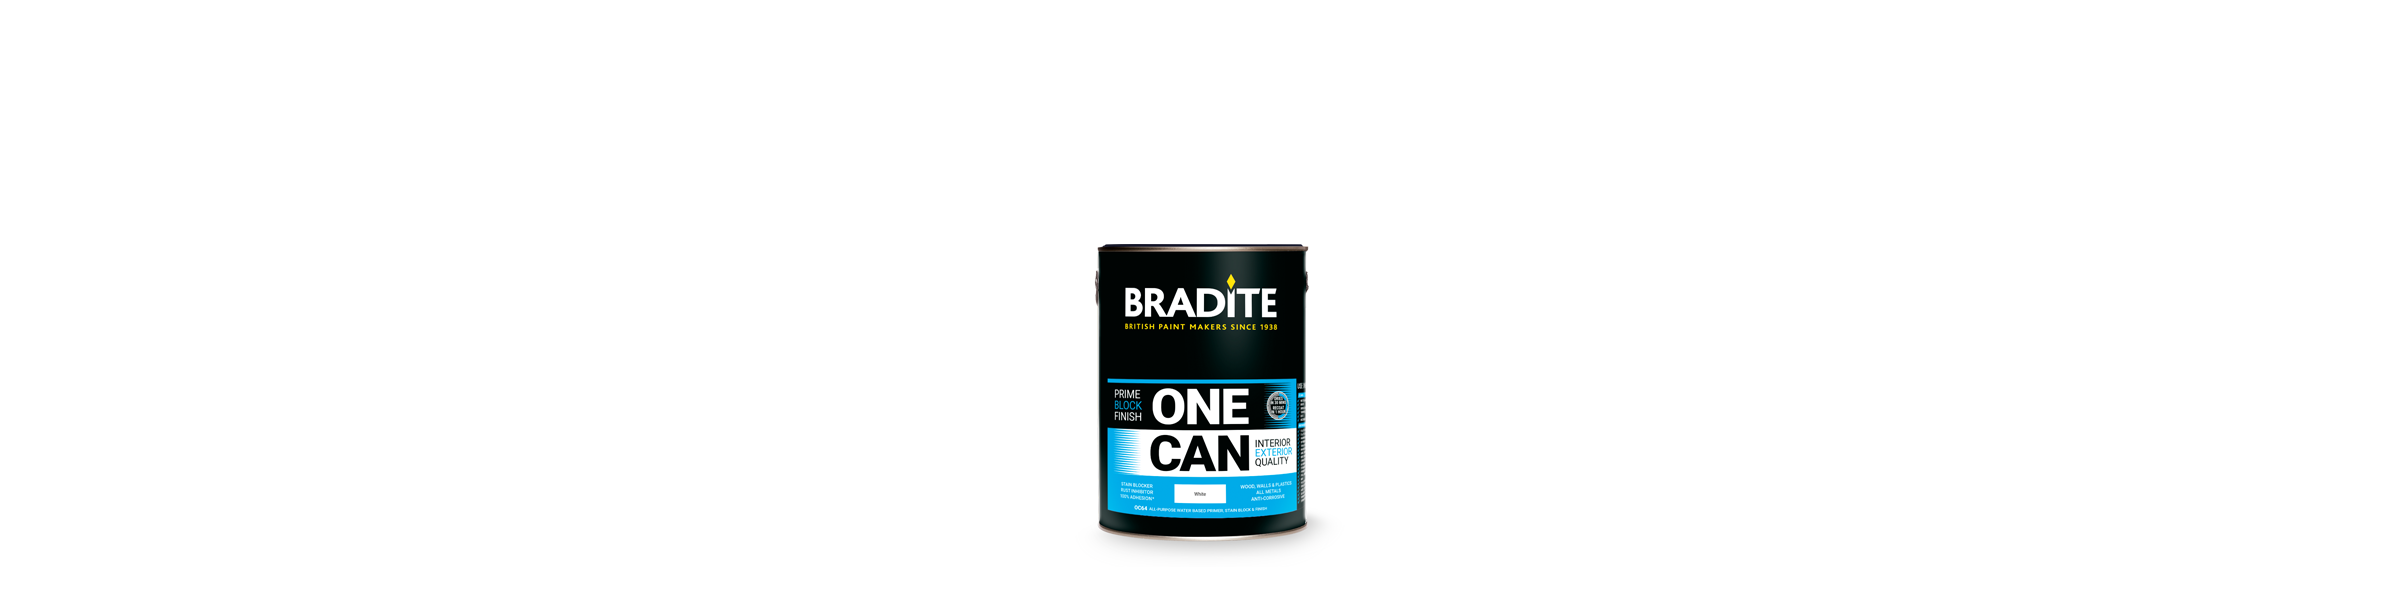 Bradite – High Quality Paints and Coatings